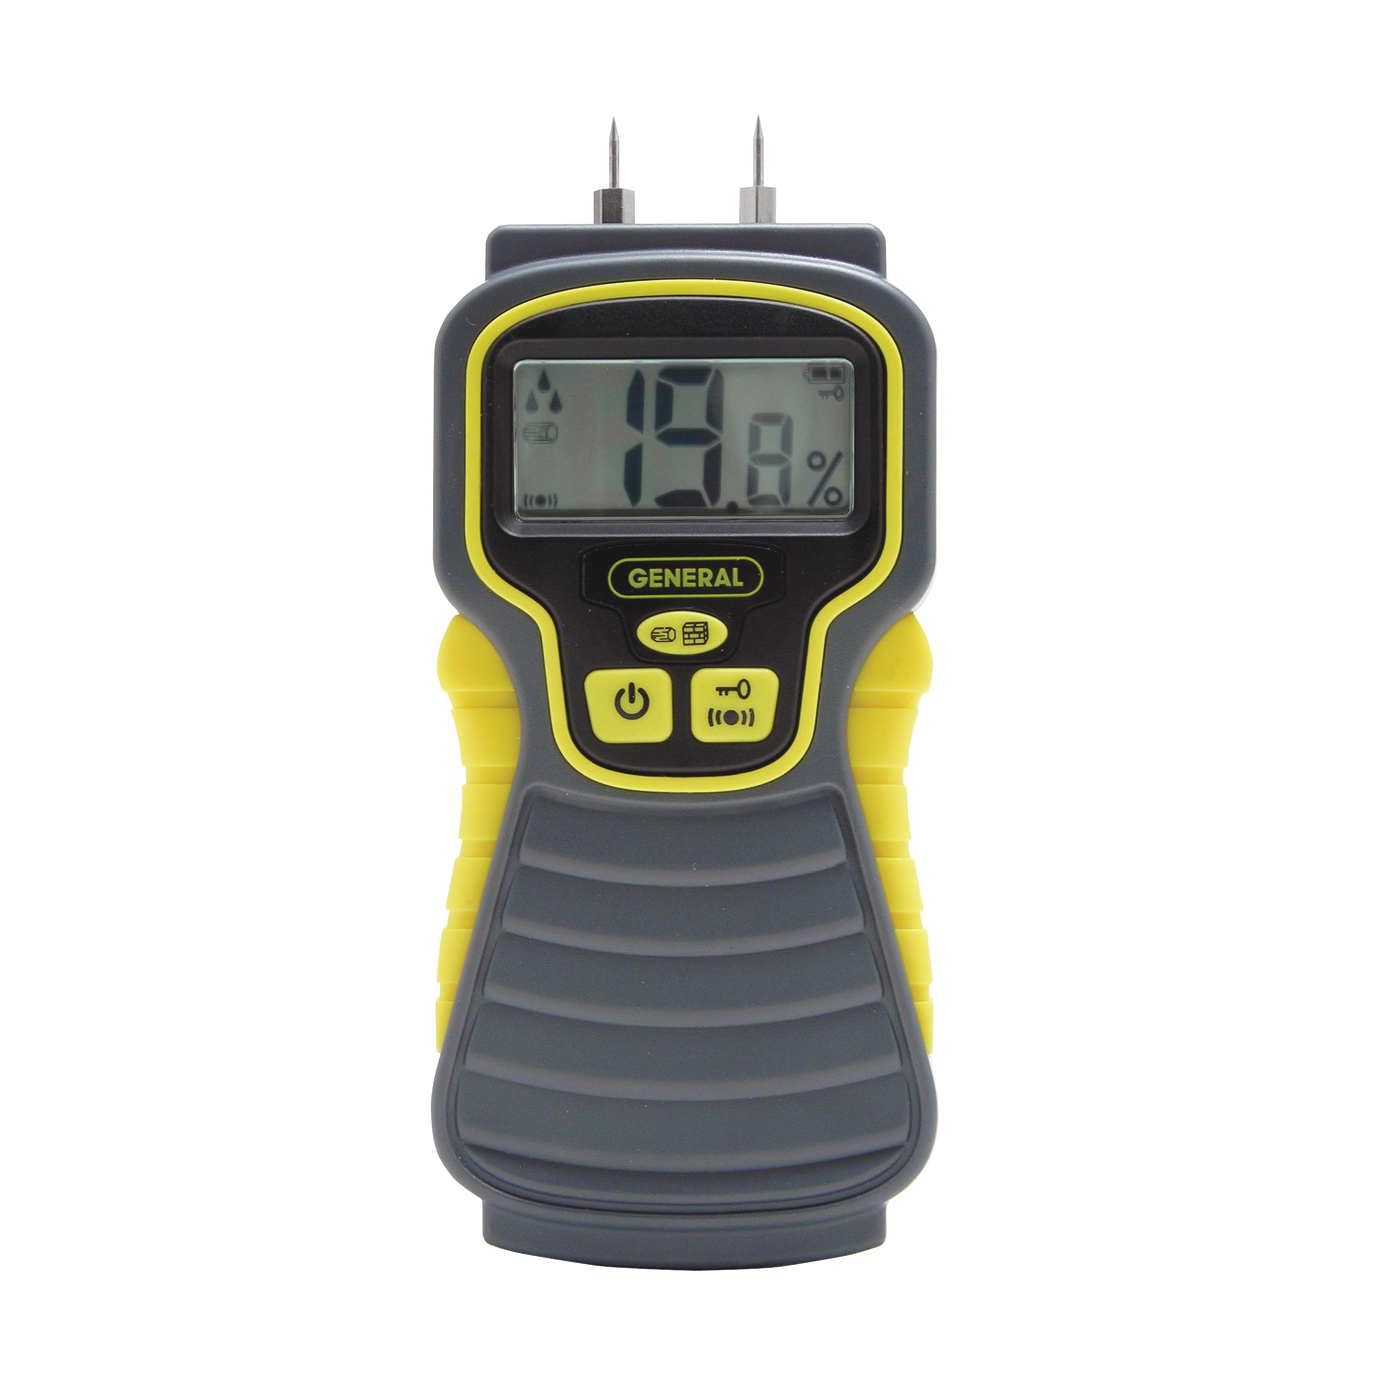 Picture of GENERAL MMD4E Moisture Meter, 5 to 50% Wood, 1.5 to 33% Building Materials, 0.1 % Accuracy, LCD Display